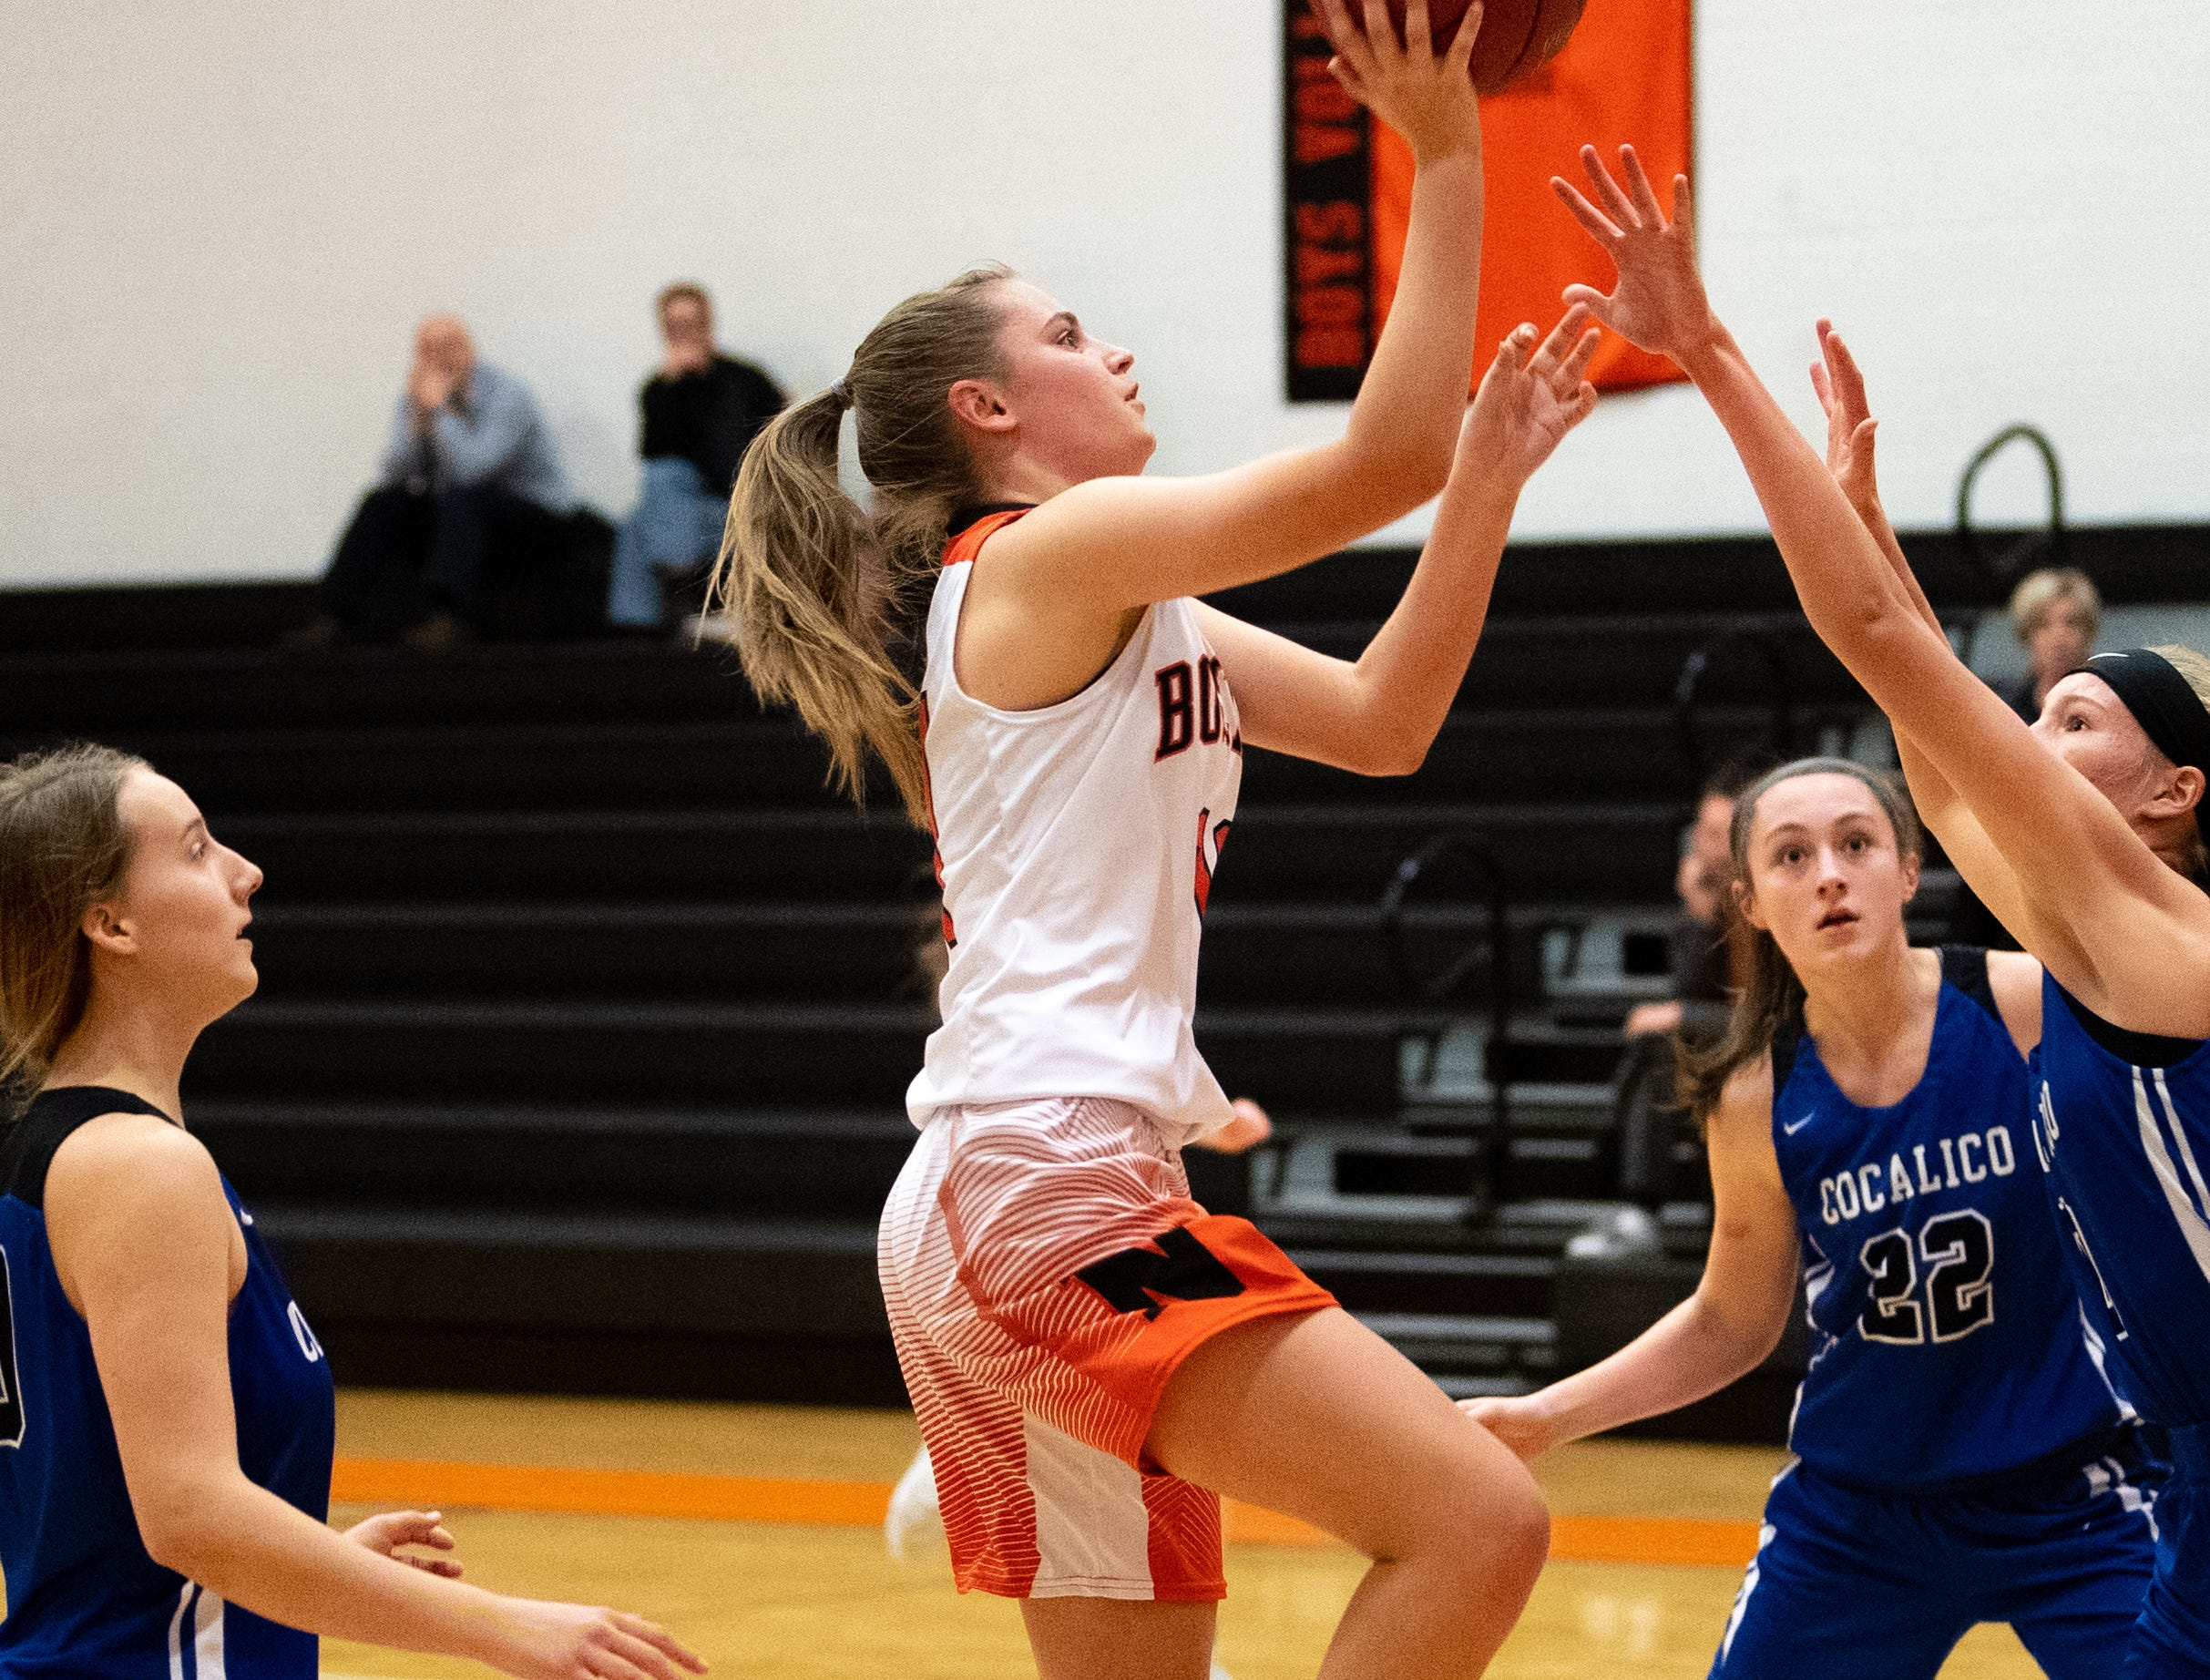 Megan Elzinga (11) lays the ball up during their game against Cocalico, December 12, 2018.